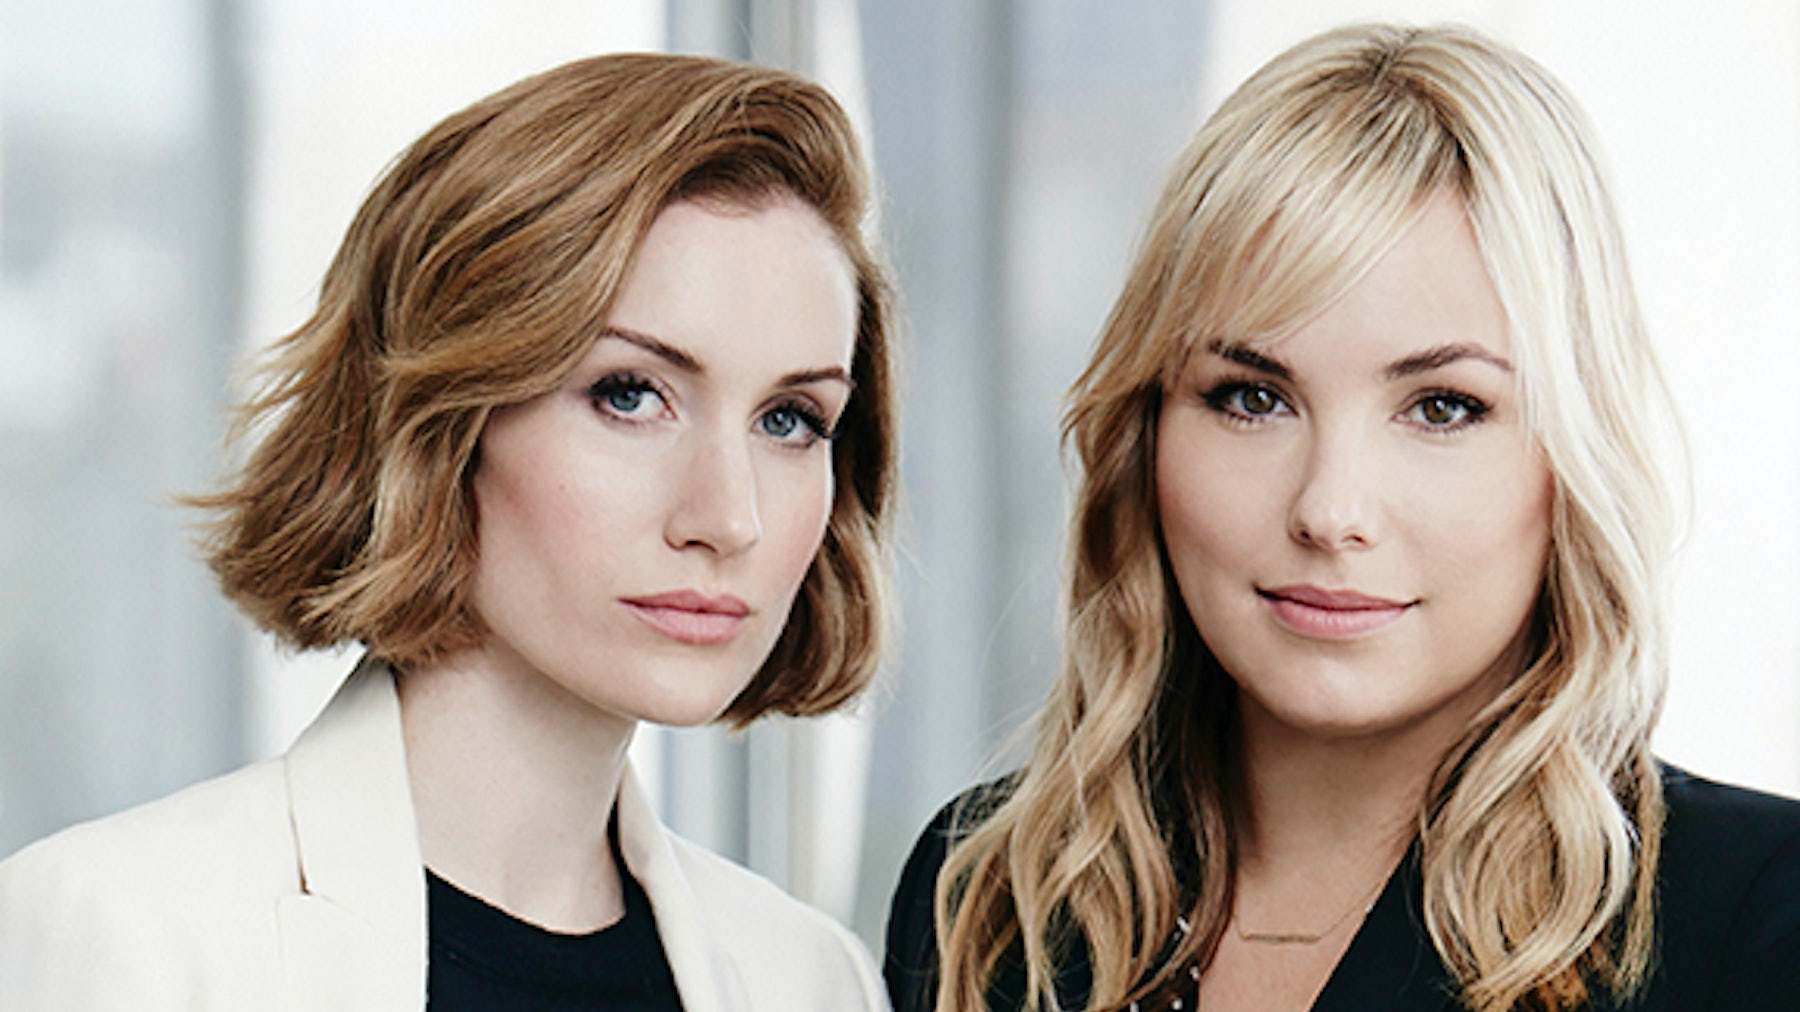 (L-R) Katherine Power and Hillary Kerr   Source: Courtesy